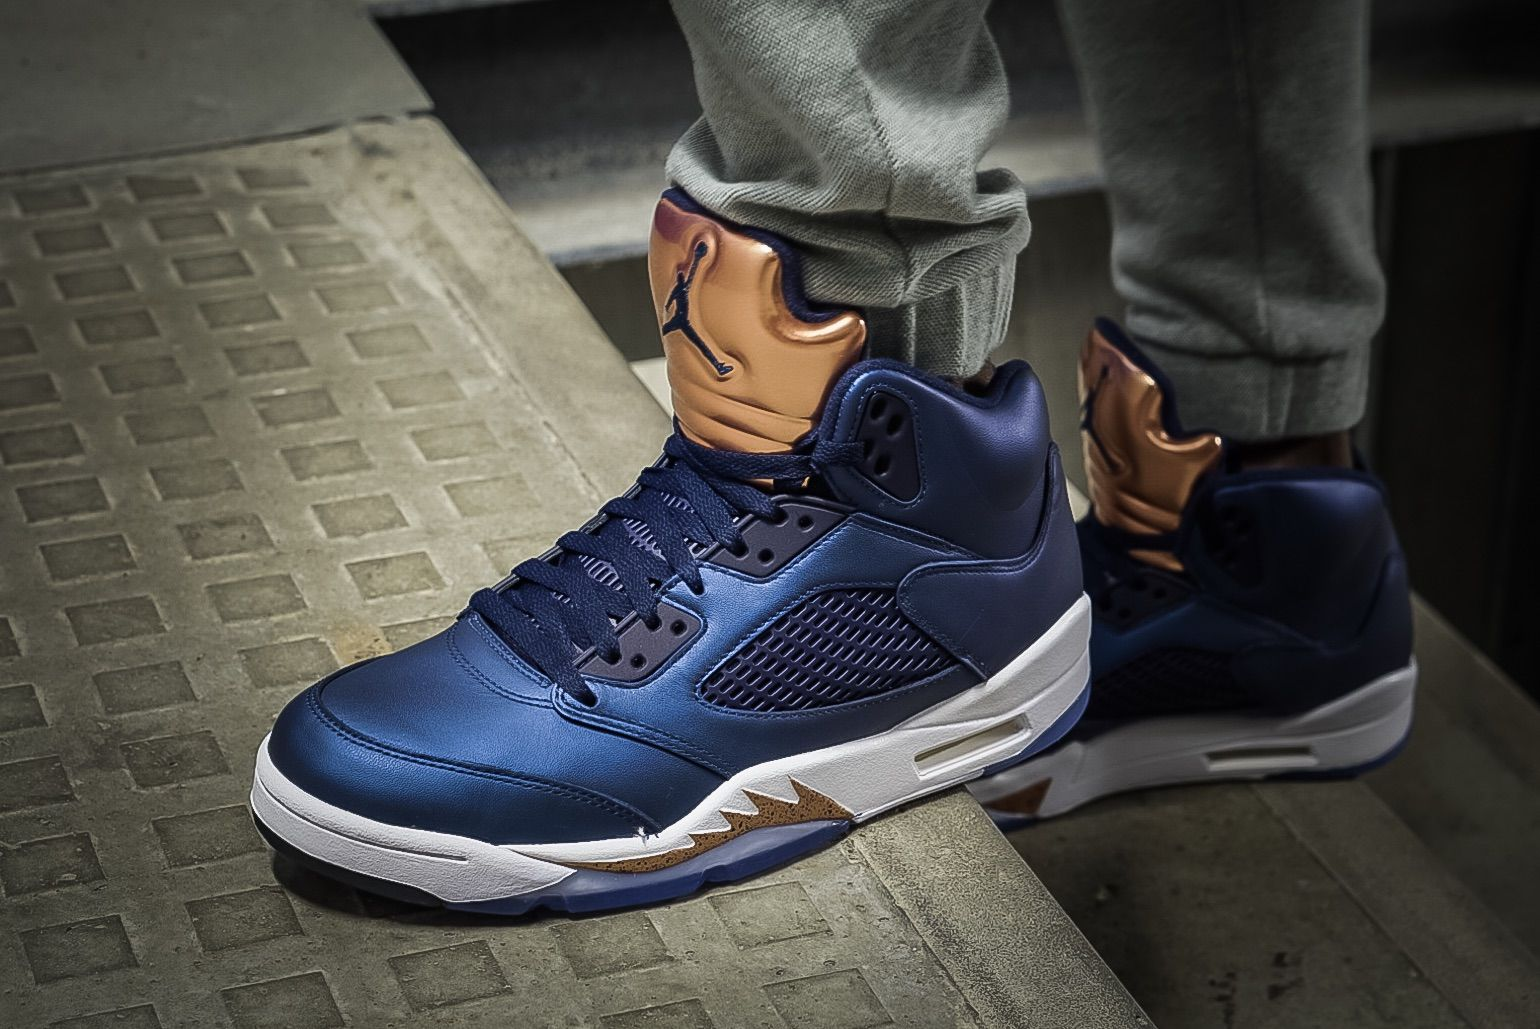 On Feet Images Of The Air Jordan 5 Bronze